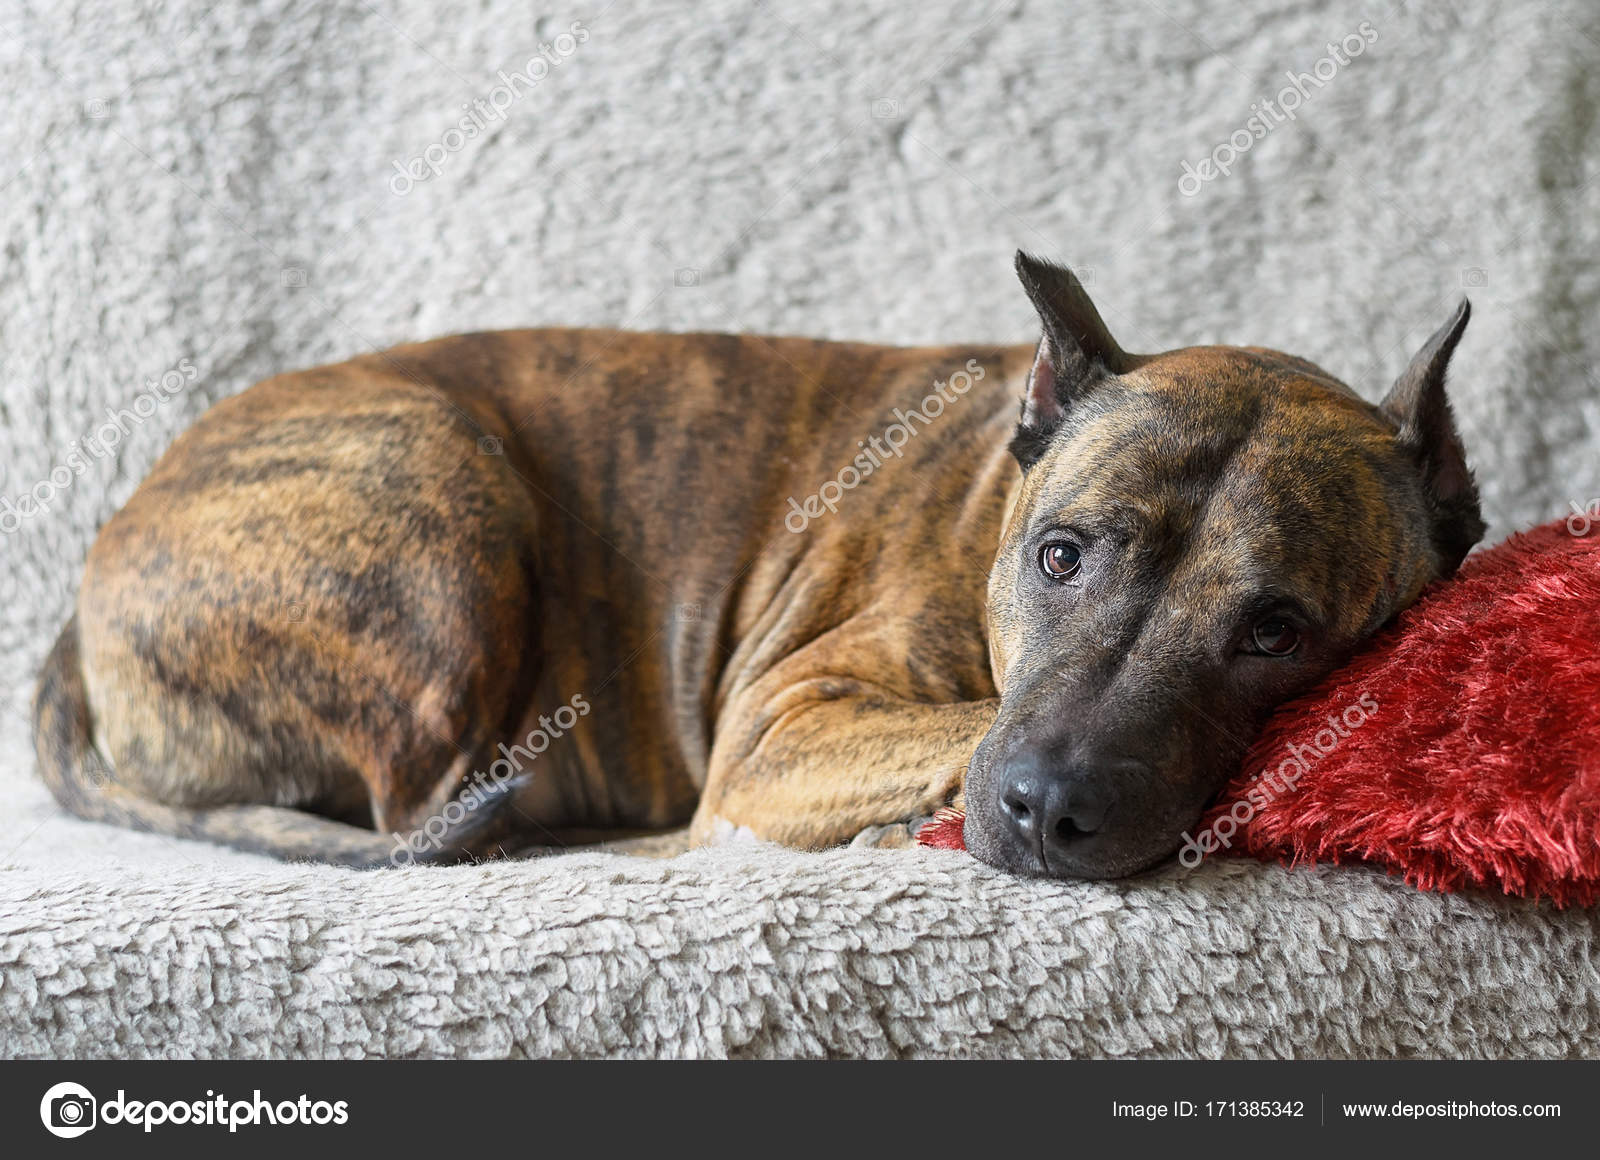 Big Sofa Fawn A Large Dog Lies On A Soft Beige Couch Stock Photo Tinkerfrost